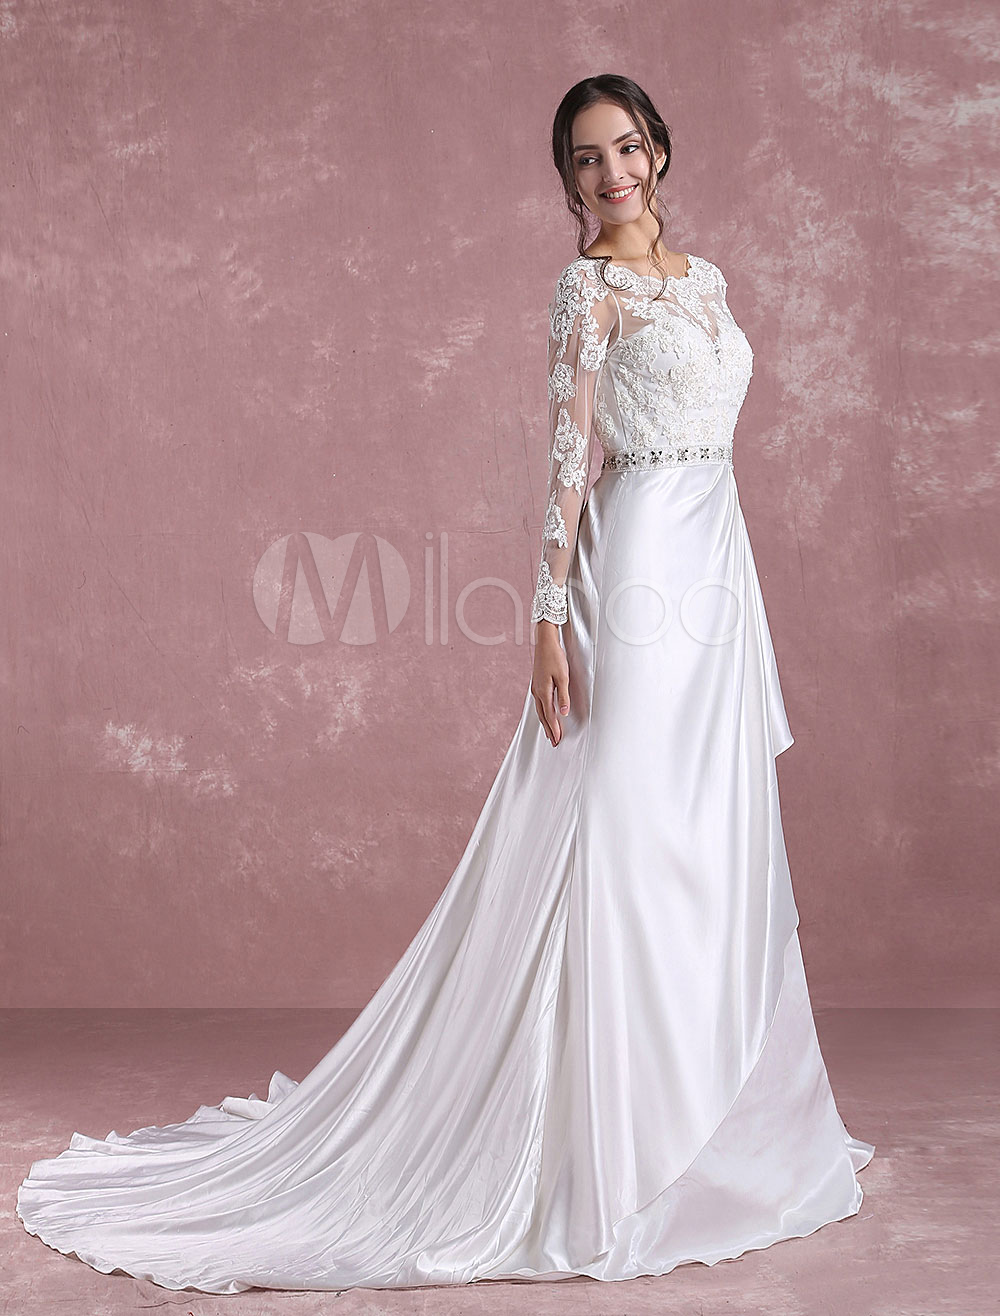 Buy Lace Wedding Dress Ivory Long Sleeve Bridal Dress Backless Satin Sweetheart Applique Beading Sash A Line Bridal Gown With Chapel Train for $252.89 in Milanoo store